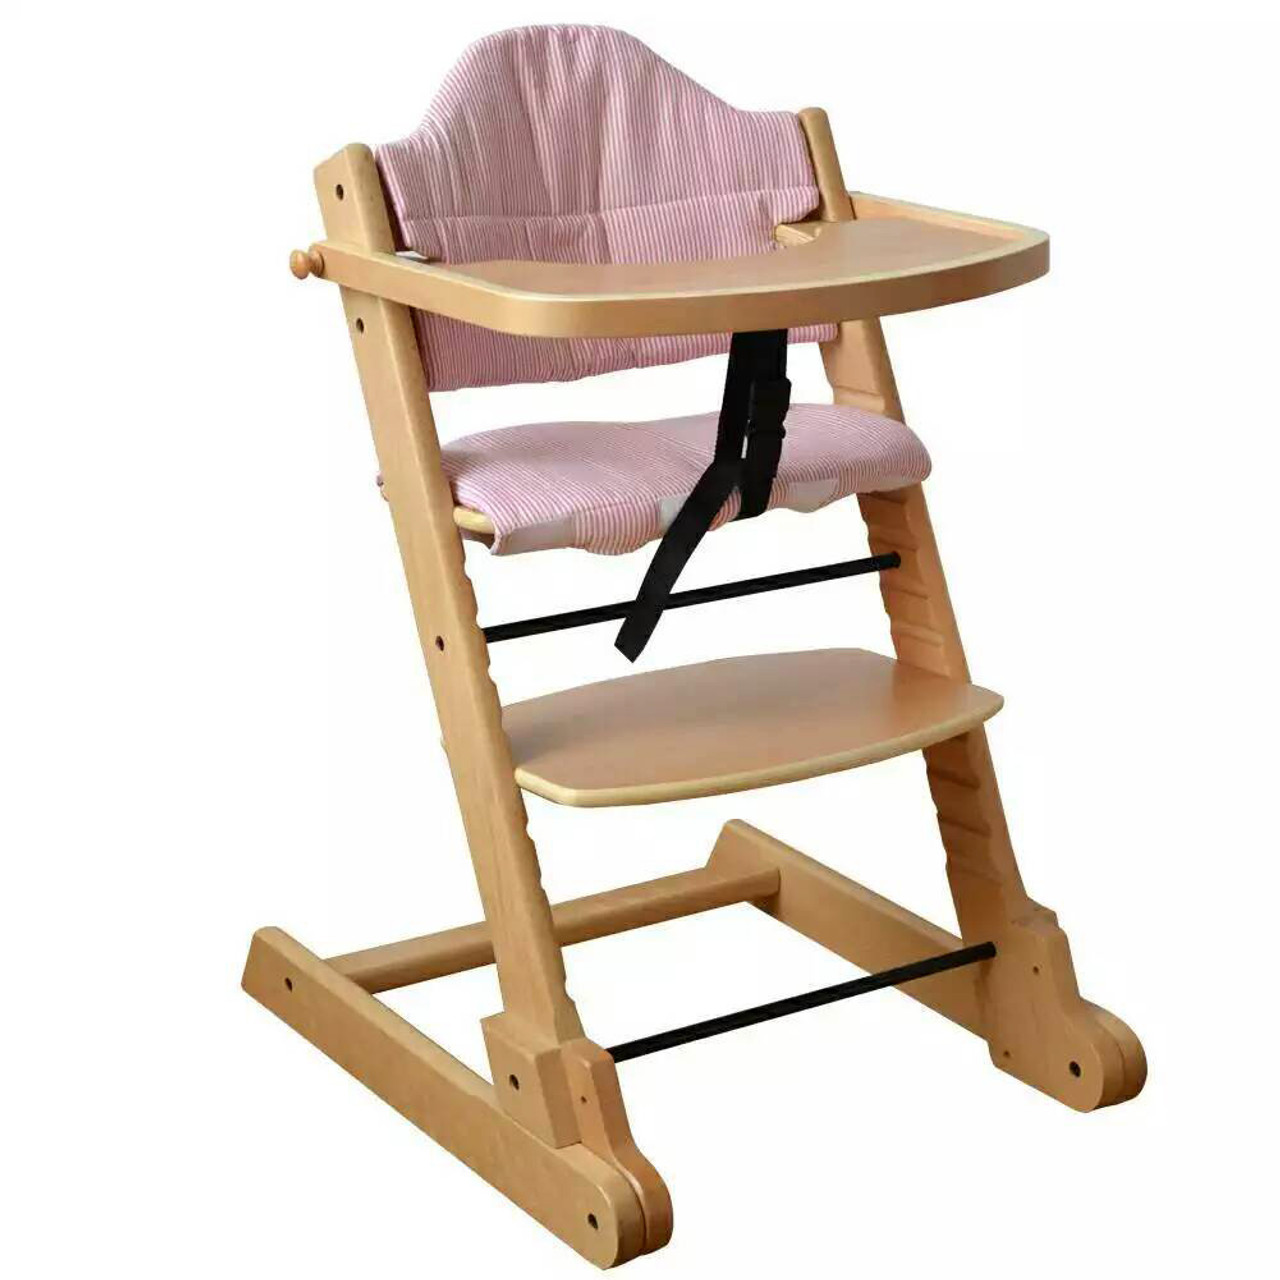 Wooden High Chairs For Babies Strong Solid Natural Wooden Foldable Baby High Chair With Tray Pad And 5 Points Safety Straps